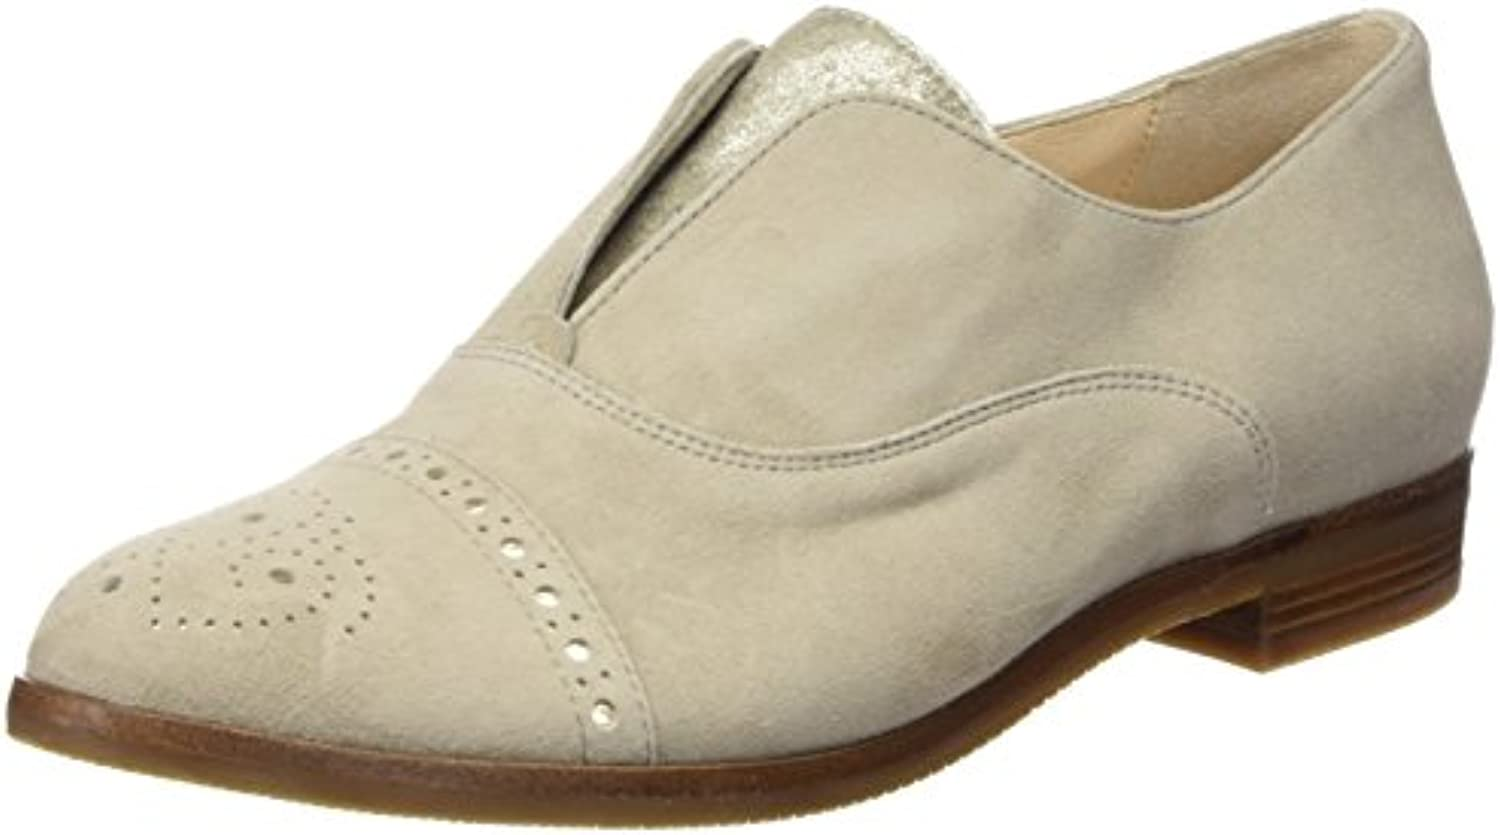 Hassia Fermo, Weite G - Mocasines Mujer